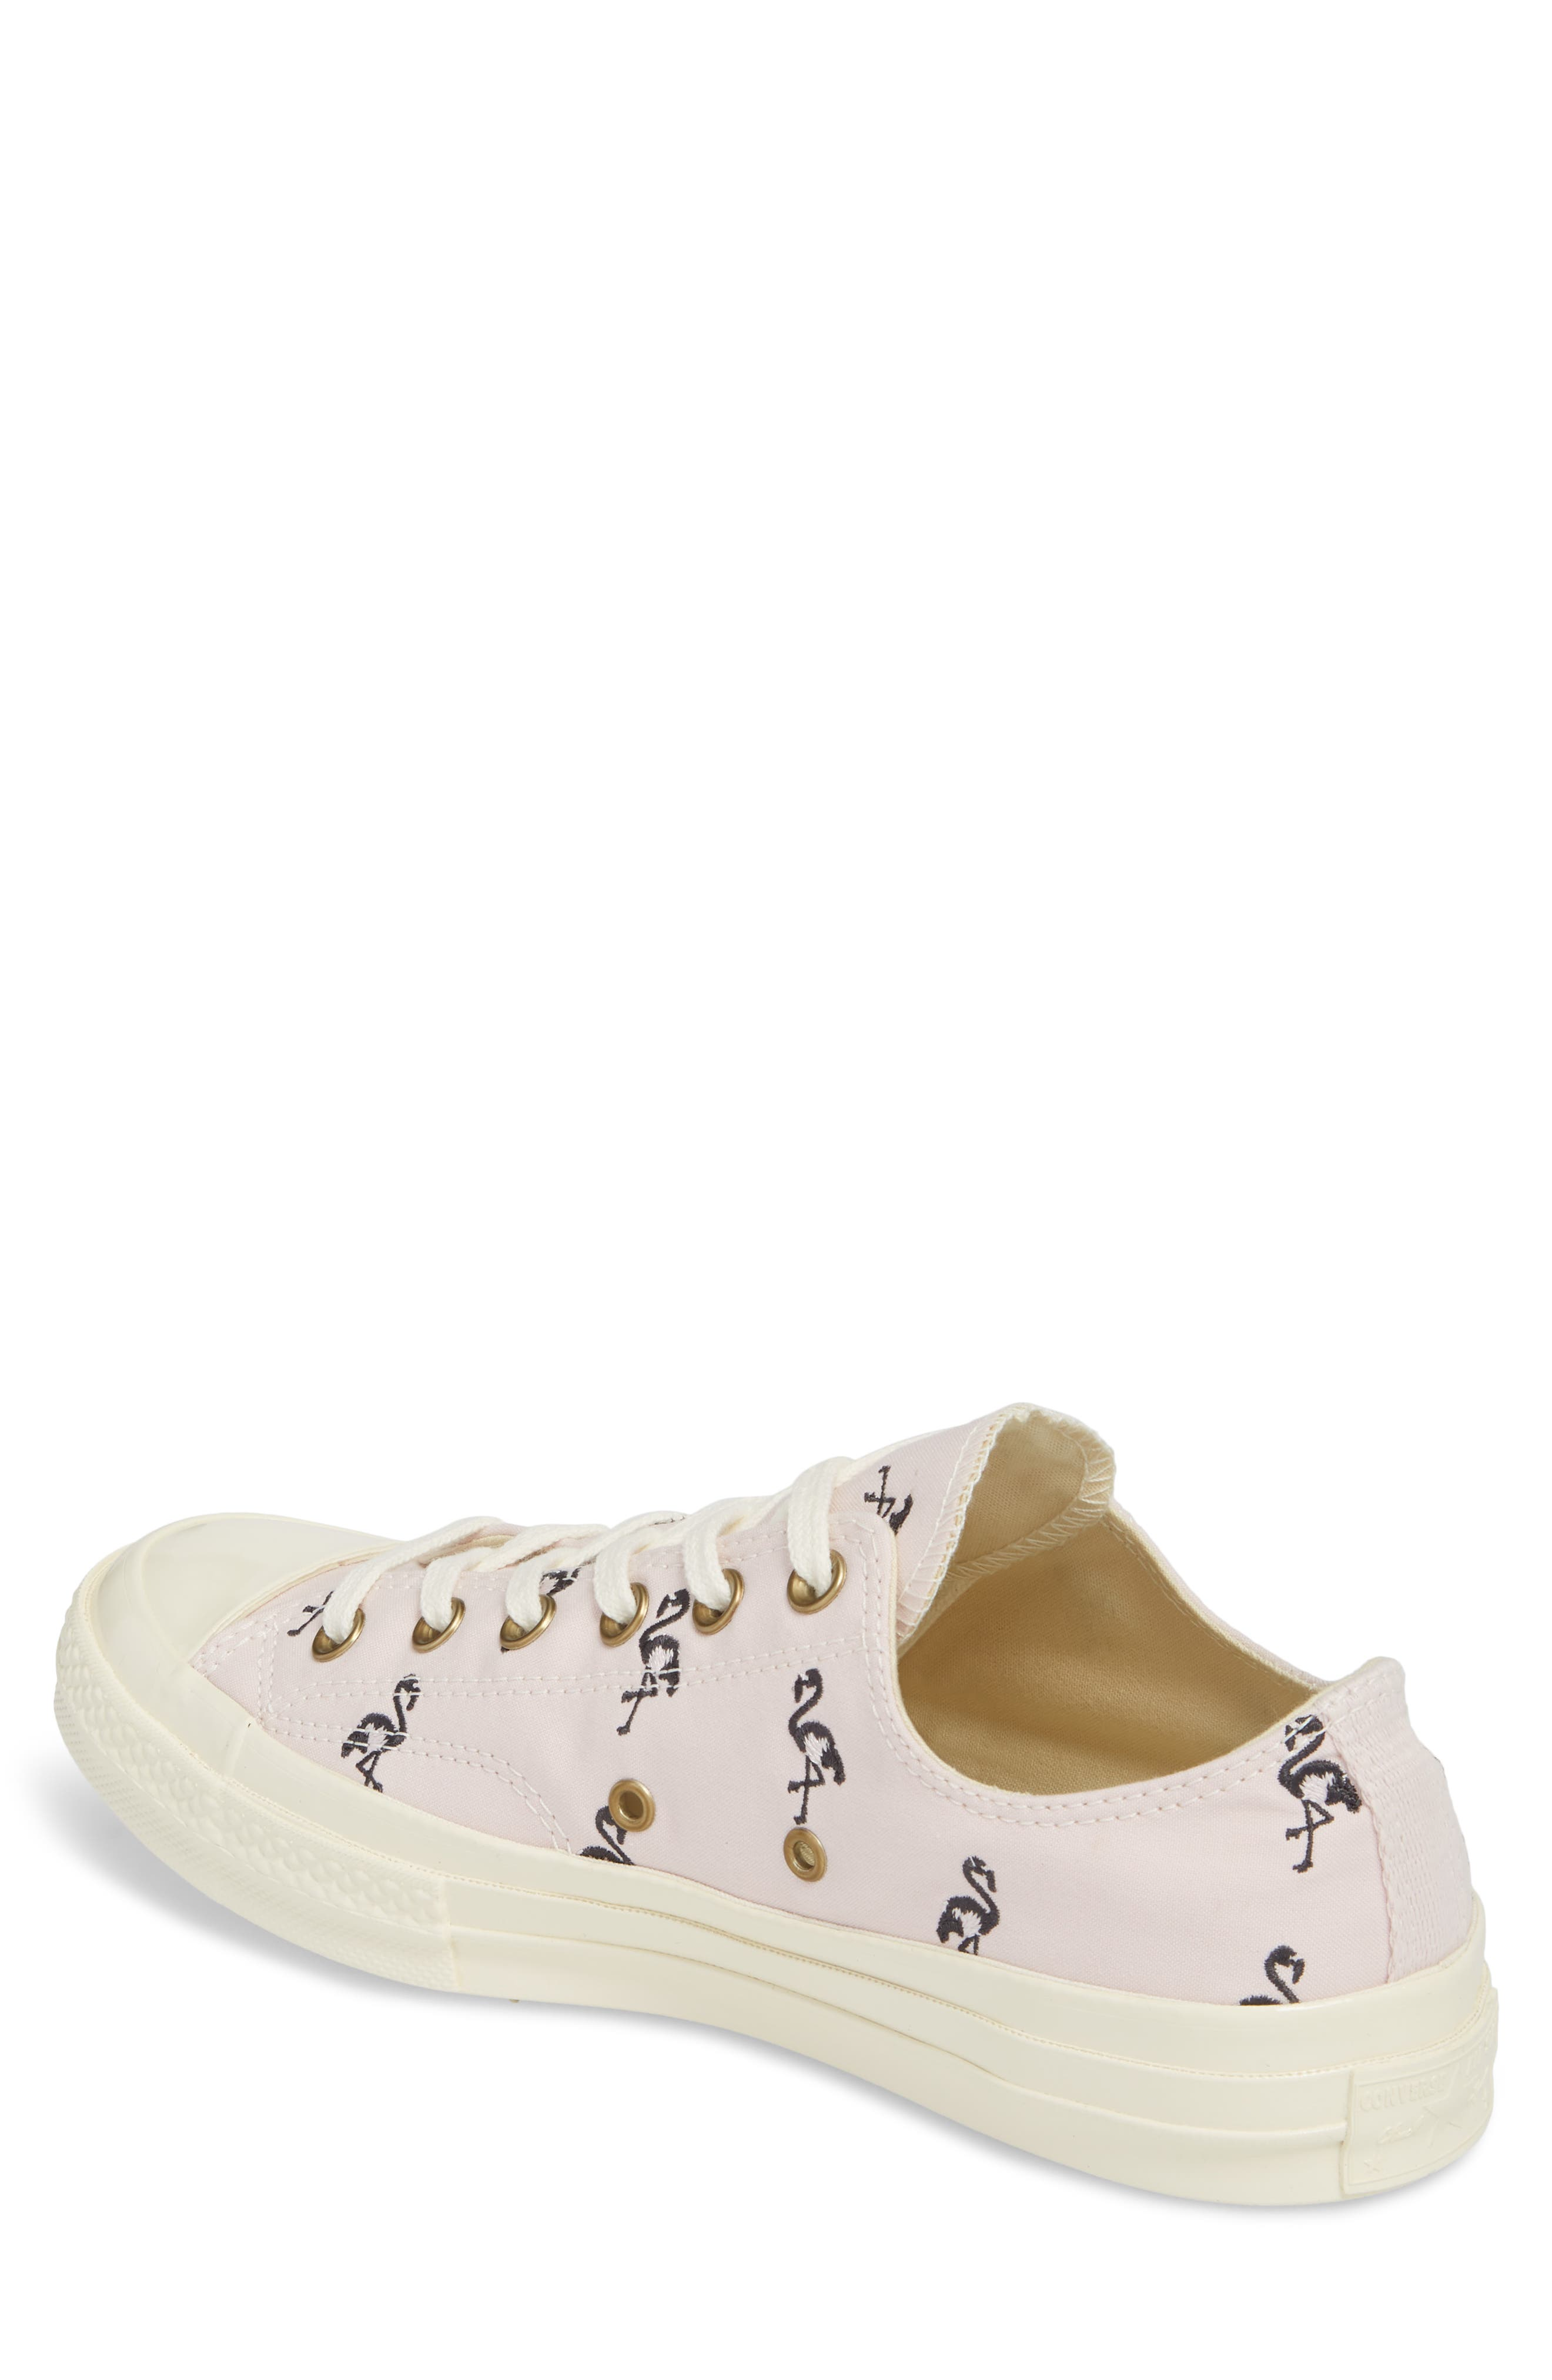 Chuck Taylor<sup>®</sup> All Star<sup>®</sup> 70 Flamingos Low Top Sneaker,                             Alternate thumbnail 2, color,                             653